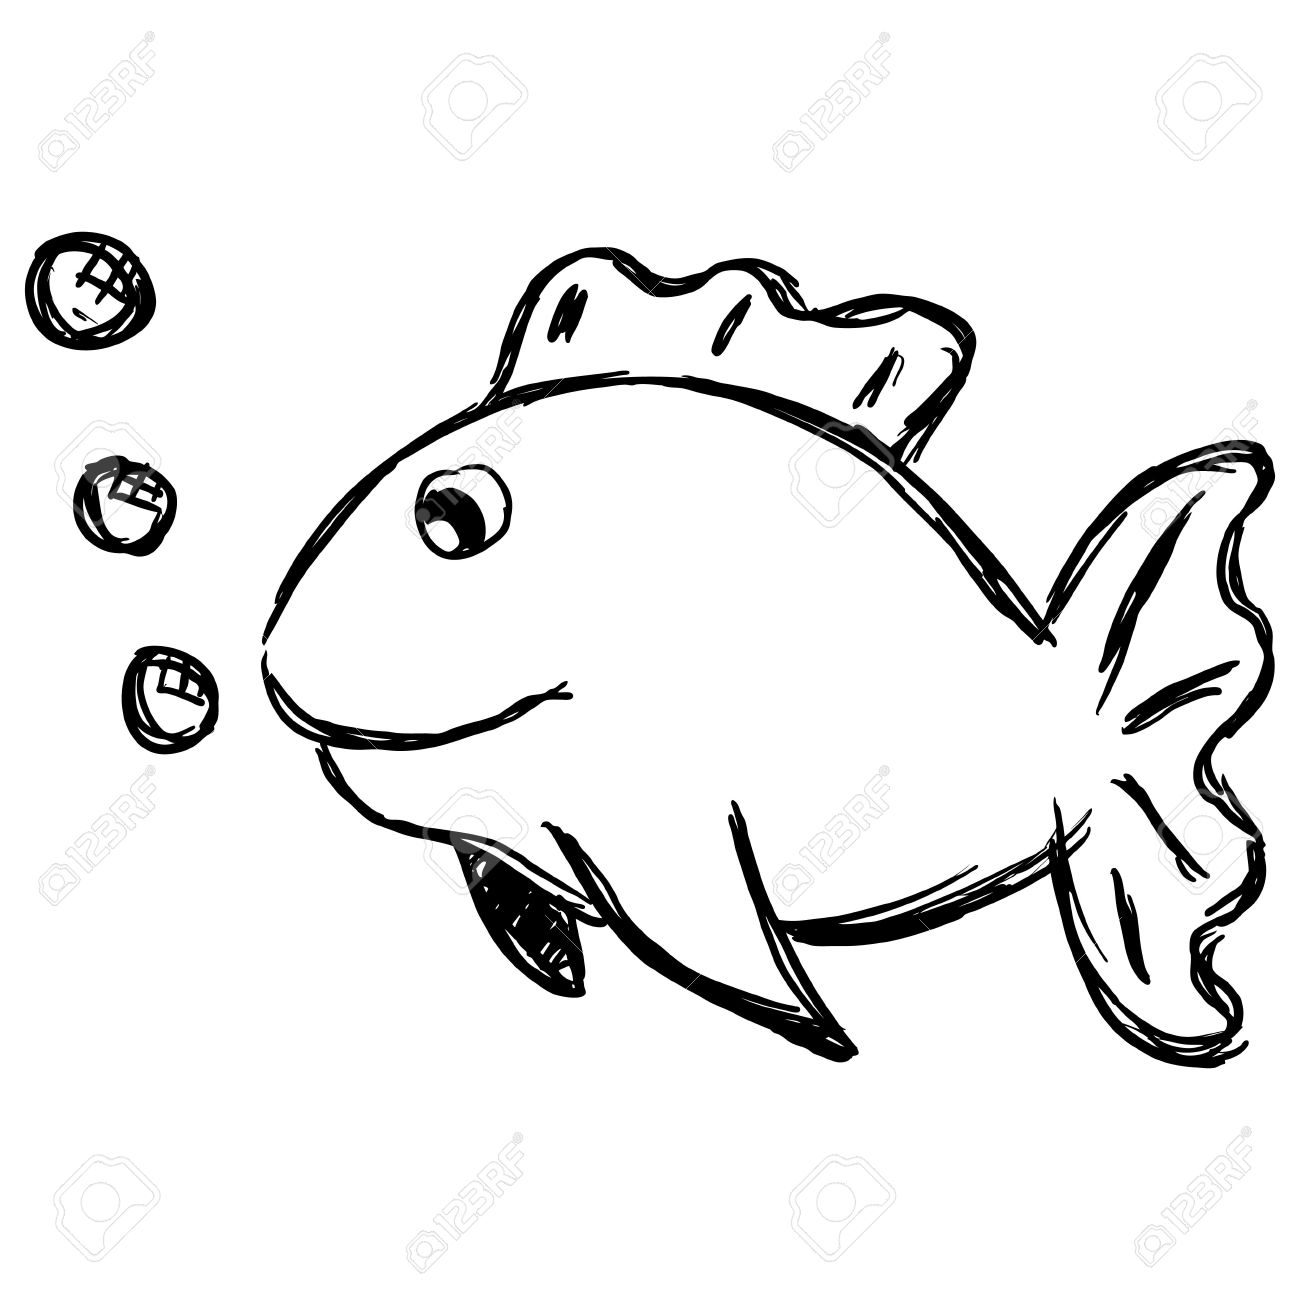 1300x1300 Cartoon Drawing Of A Fish Outline Drawings Of Fish Group